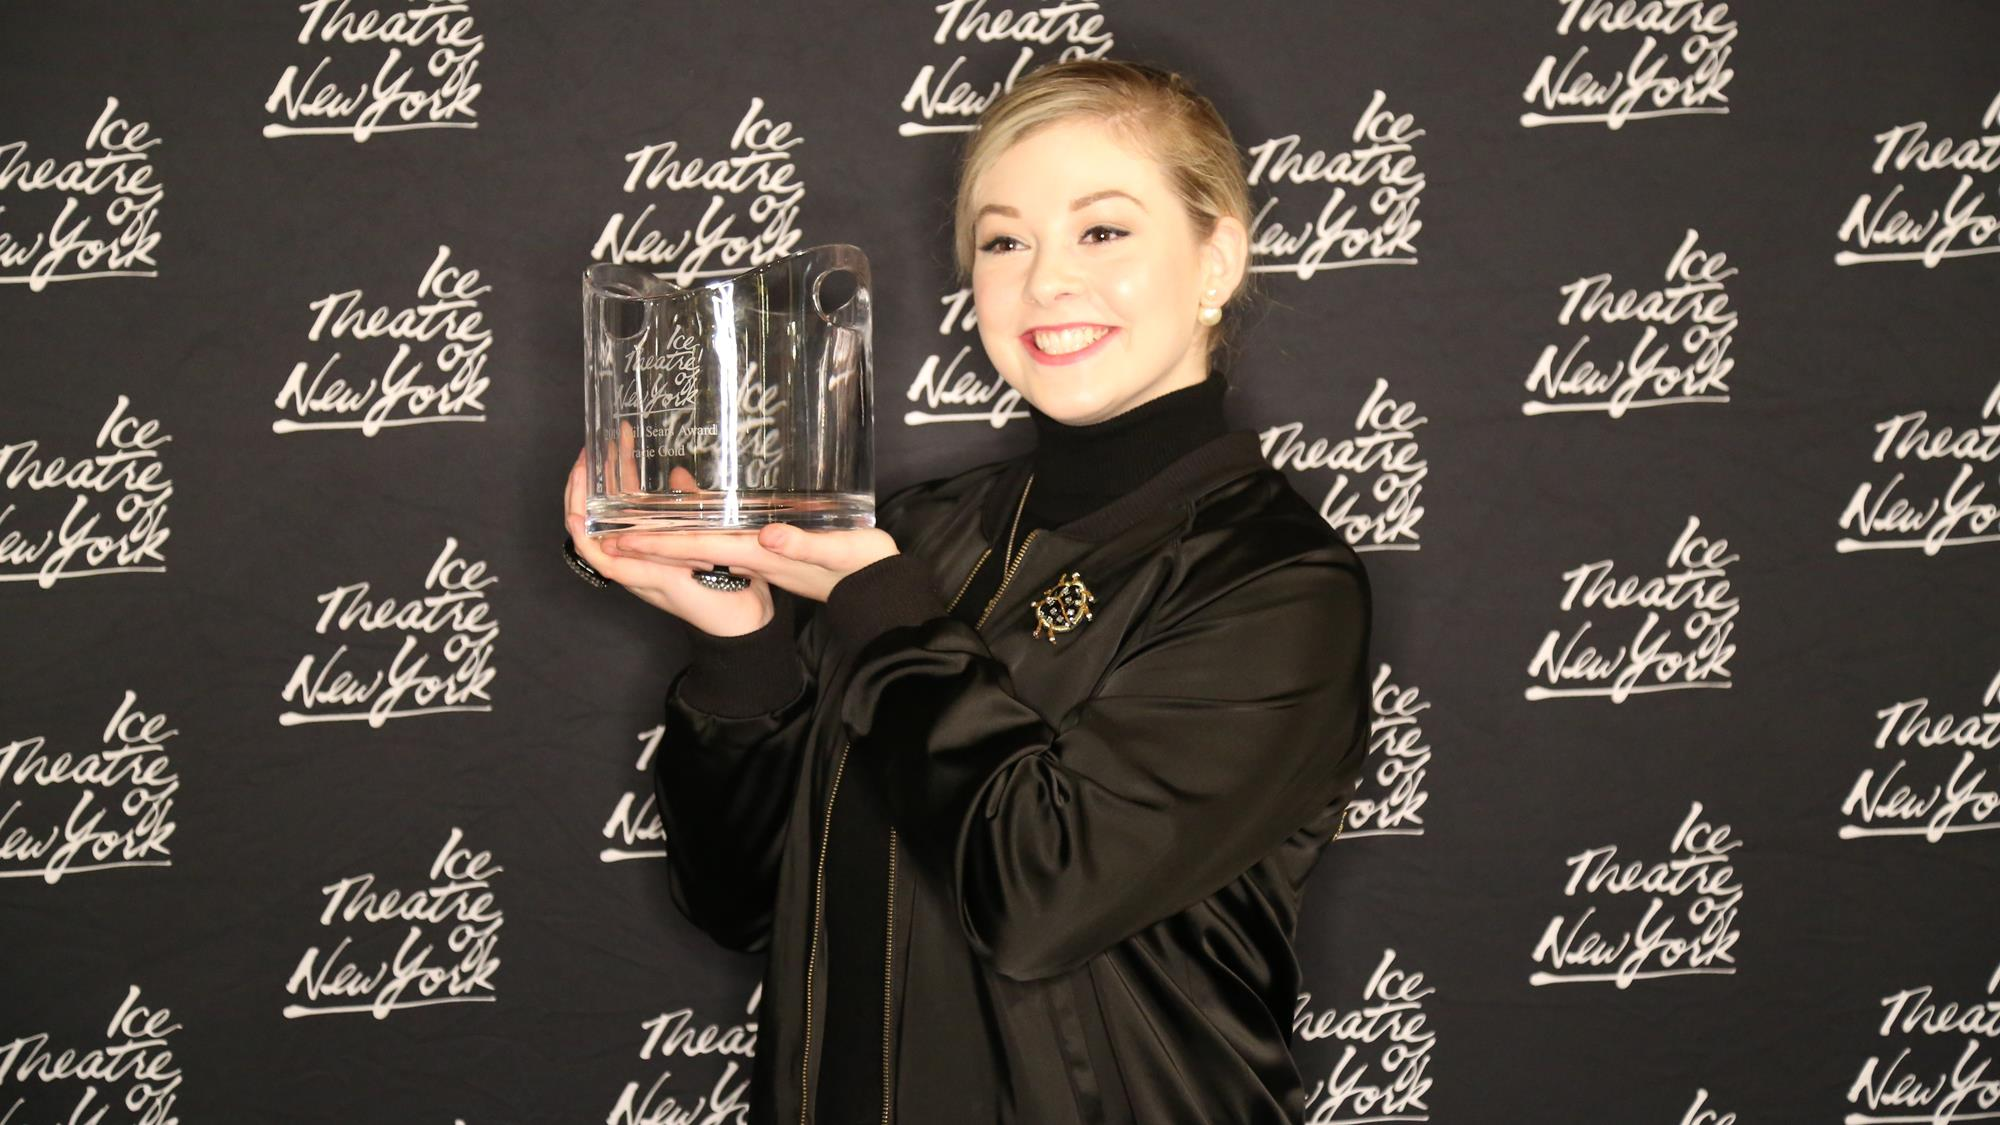 Новости межсезонья и сезона 2019-2020 - Страница 4 Gracie_Gold_Award_FBTW